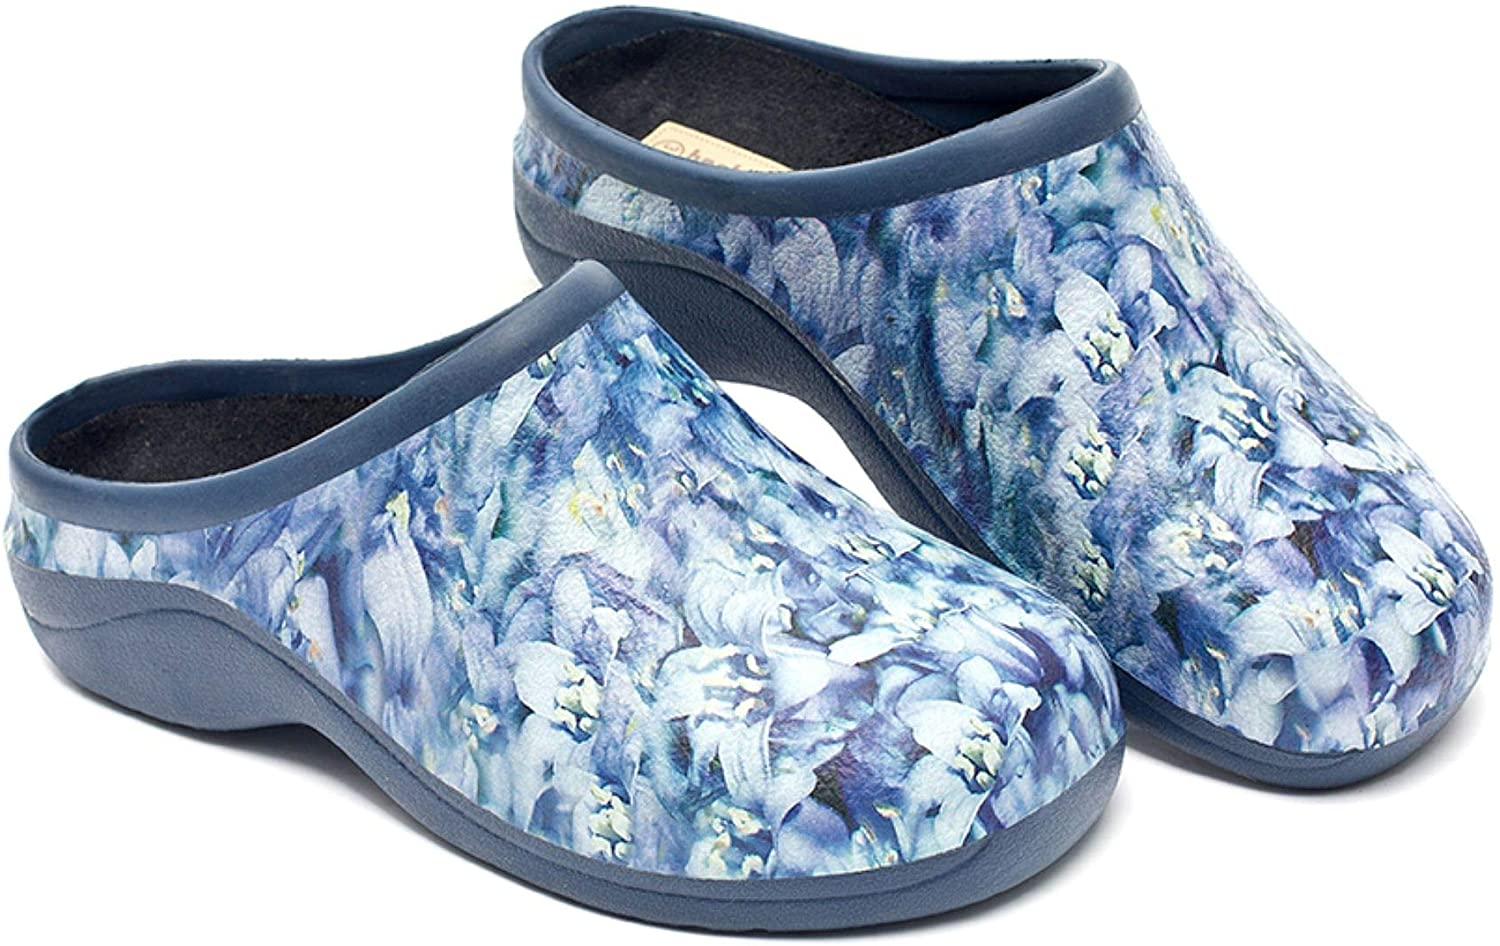 Backdoorshoes Waterproof Premium Garden Clogs with Arch Support-Bluebell Design